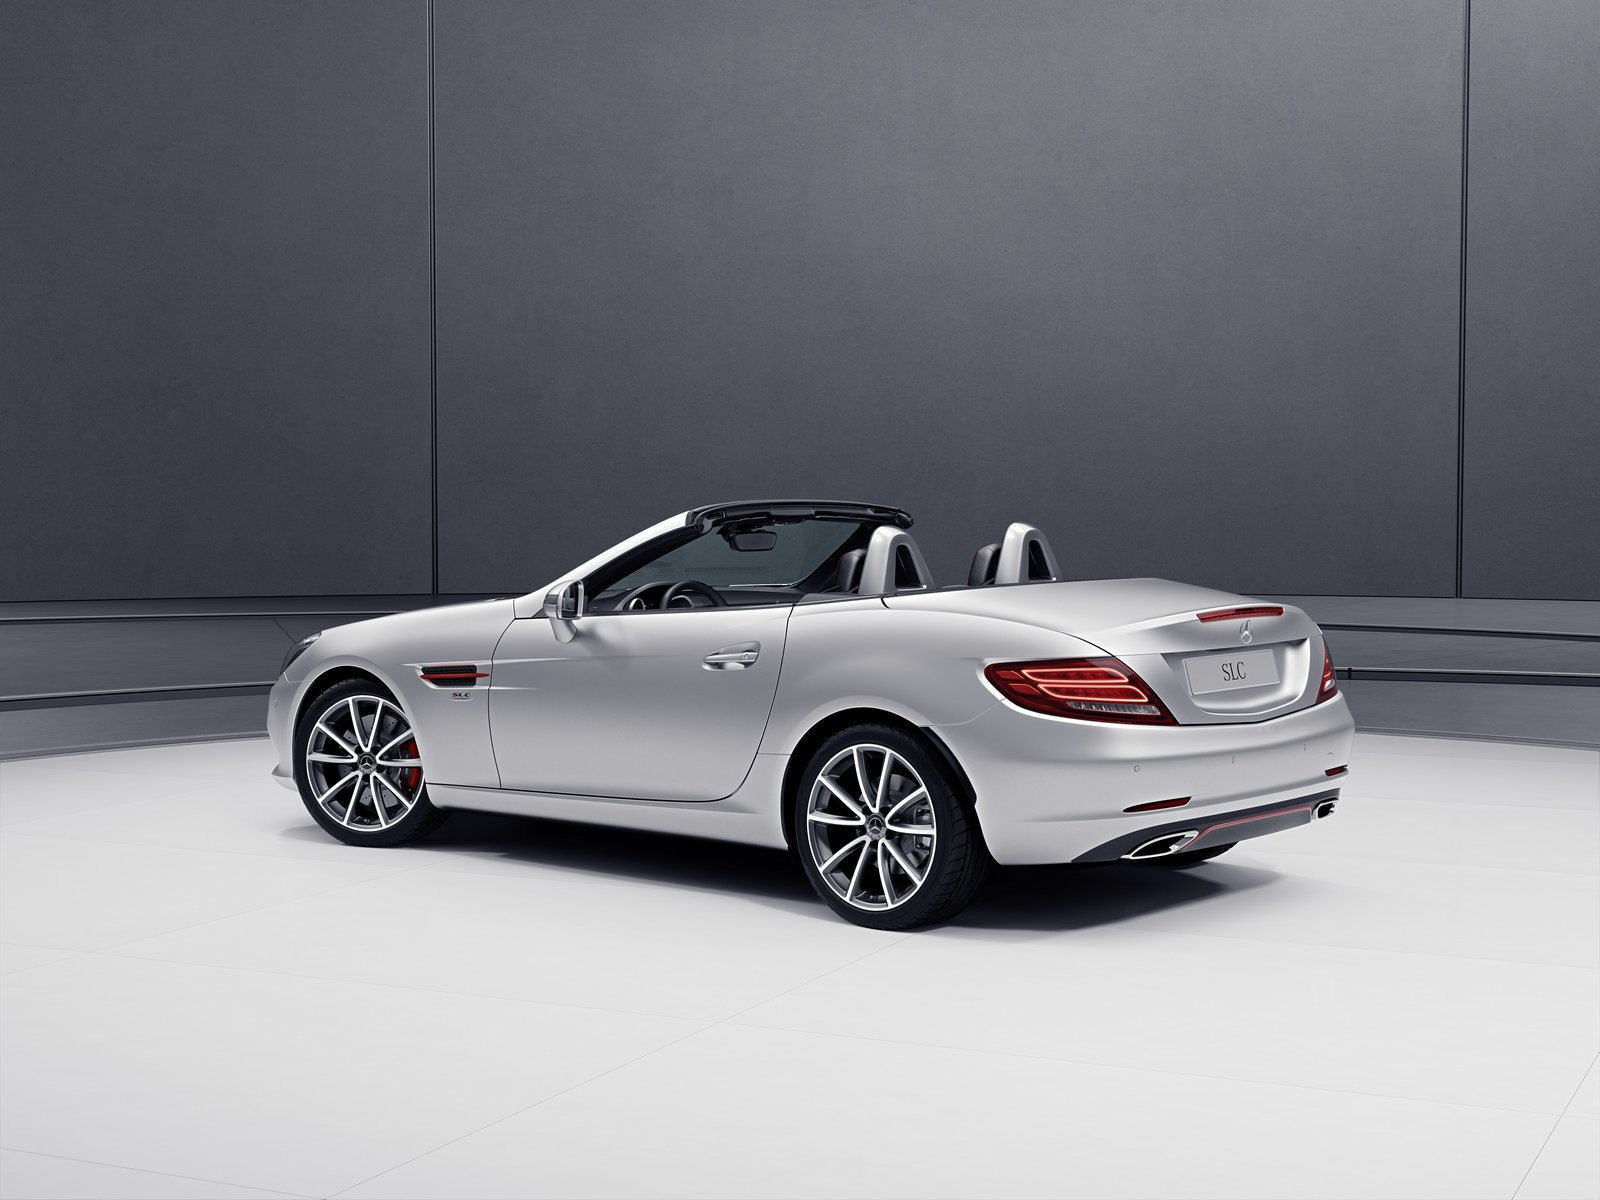 Mercedes Reportedly Axing The Slc